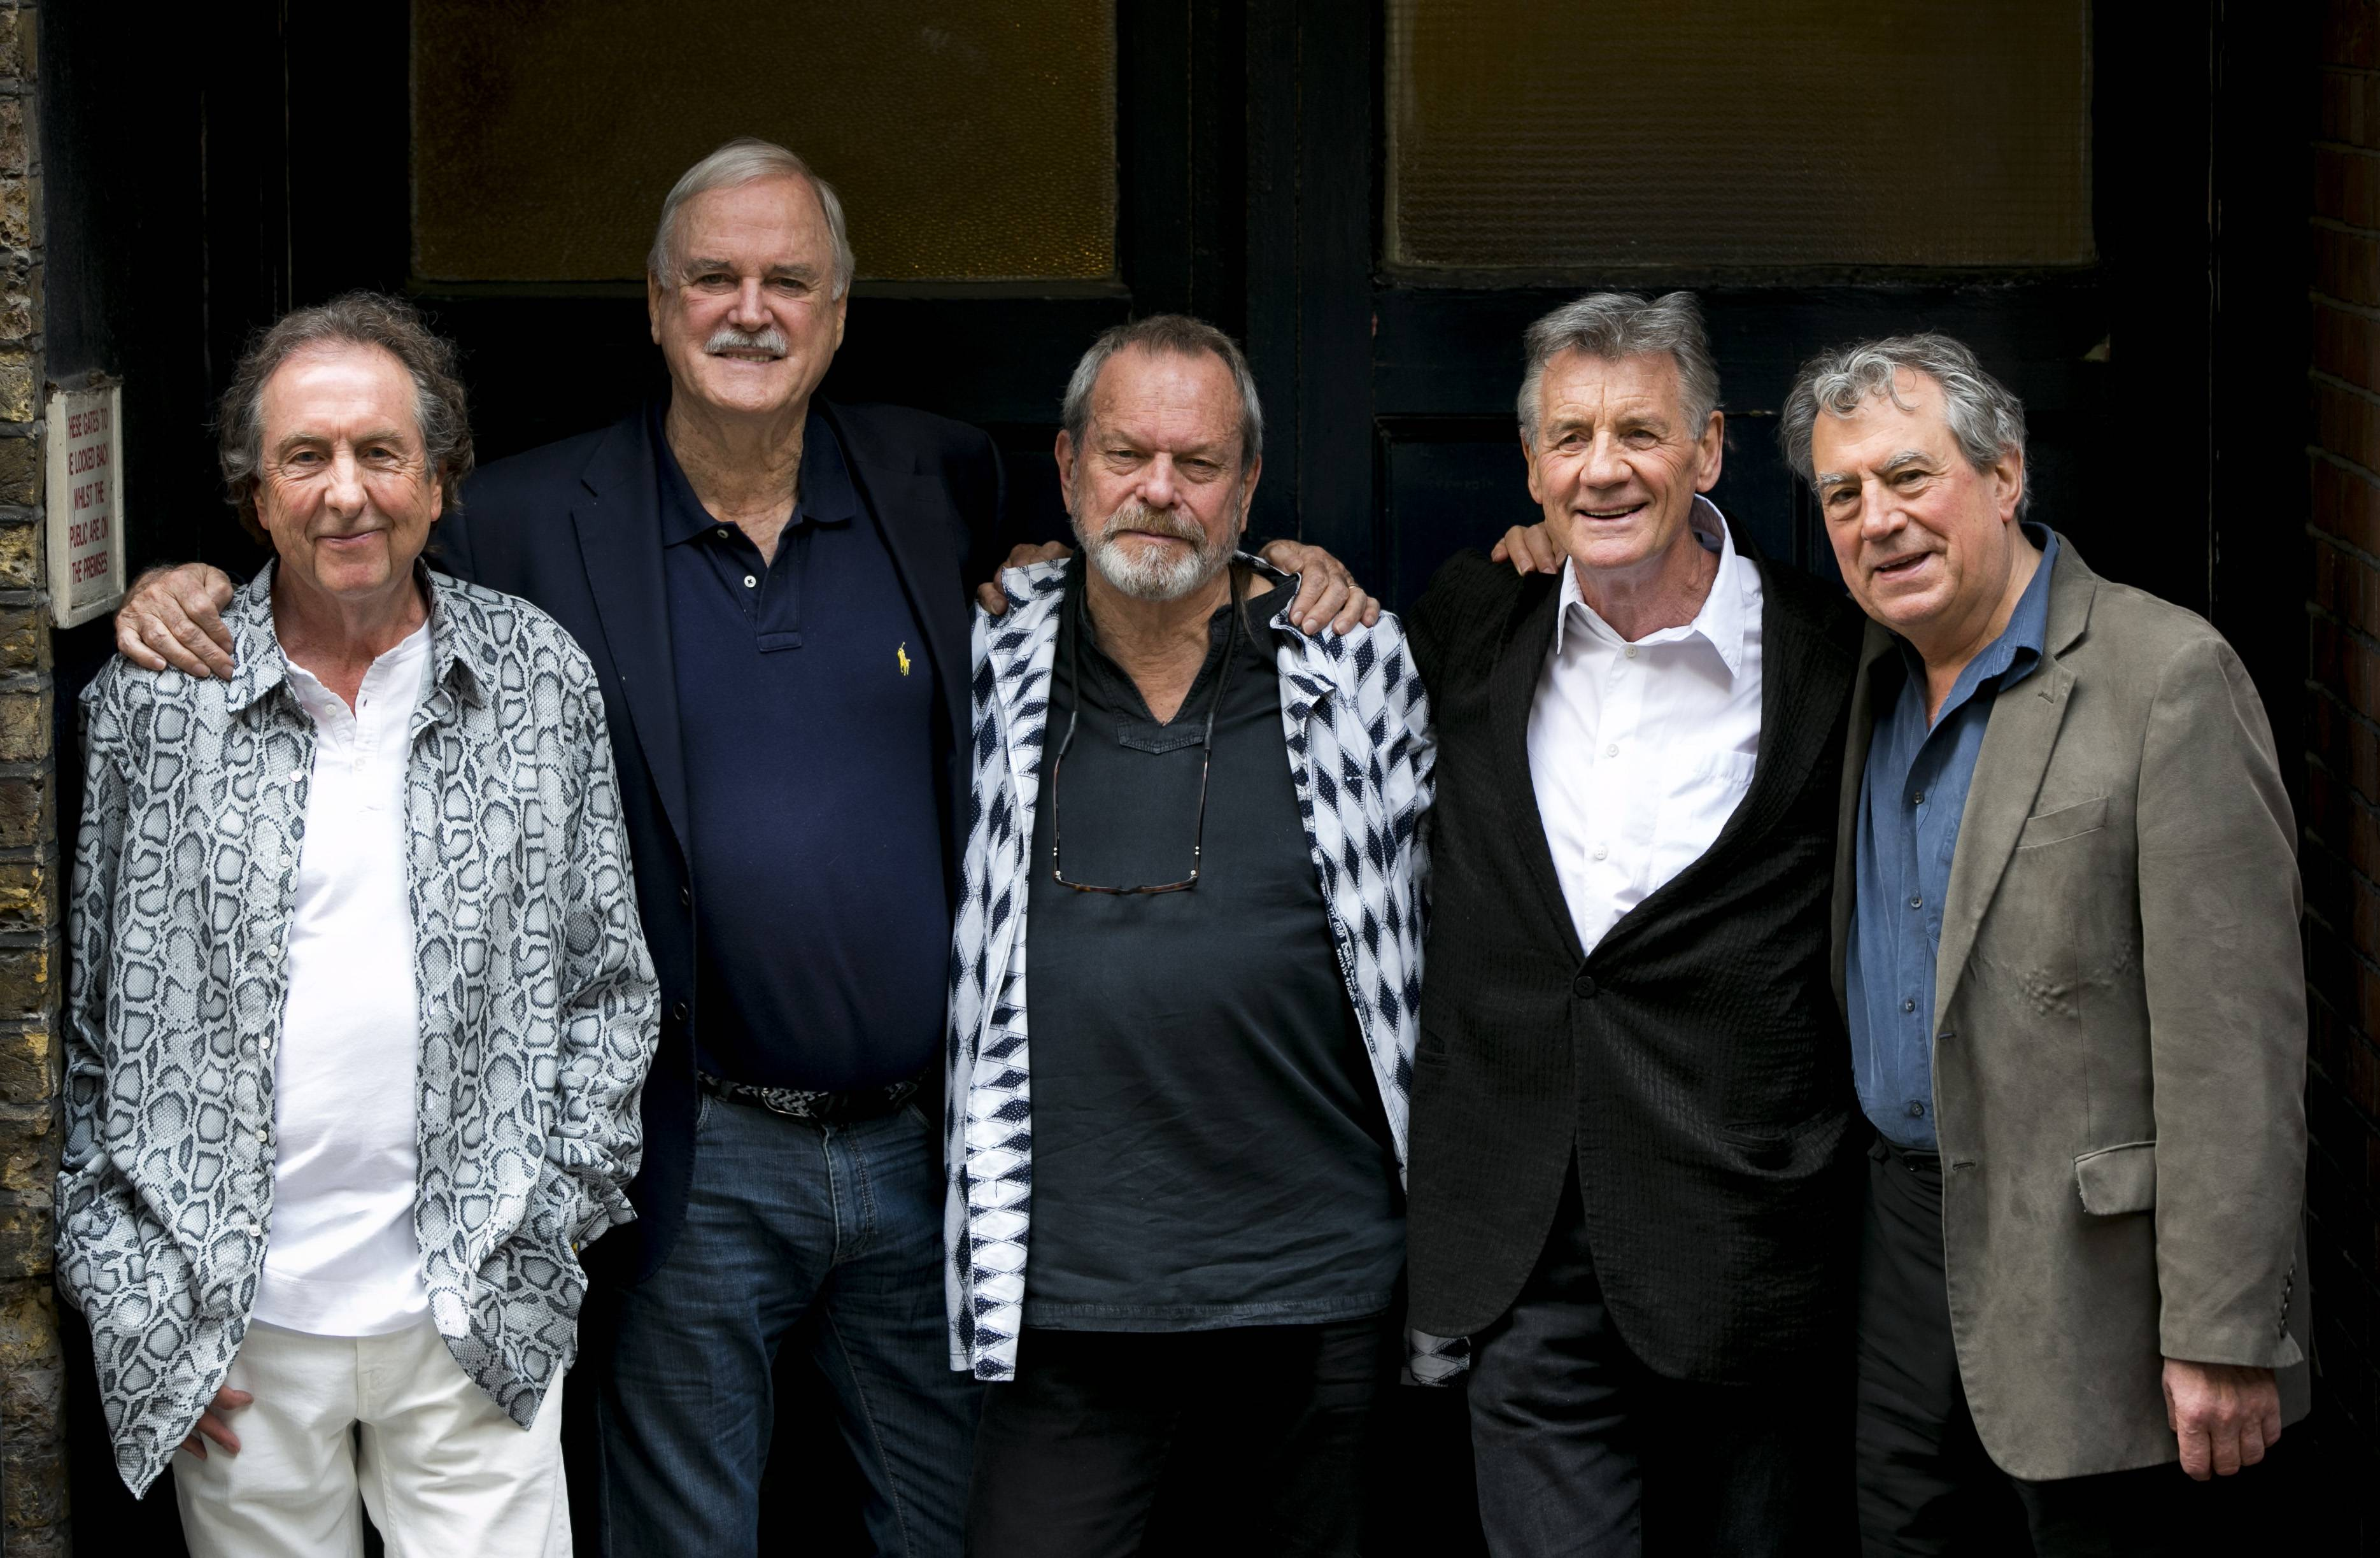 Eric Idle, left, John Cleese, Terry Gilliam, Michael Palin and Terry Jones of the comedy group Monty Python are ready for their 10 reunion shows at London's O2 Arena starting Tuesday.